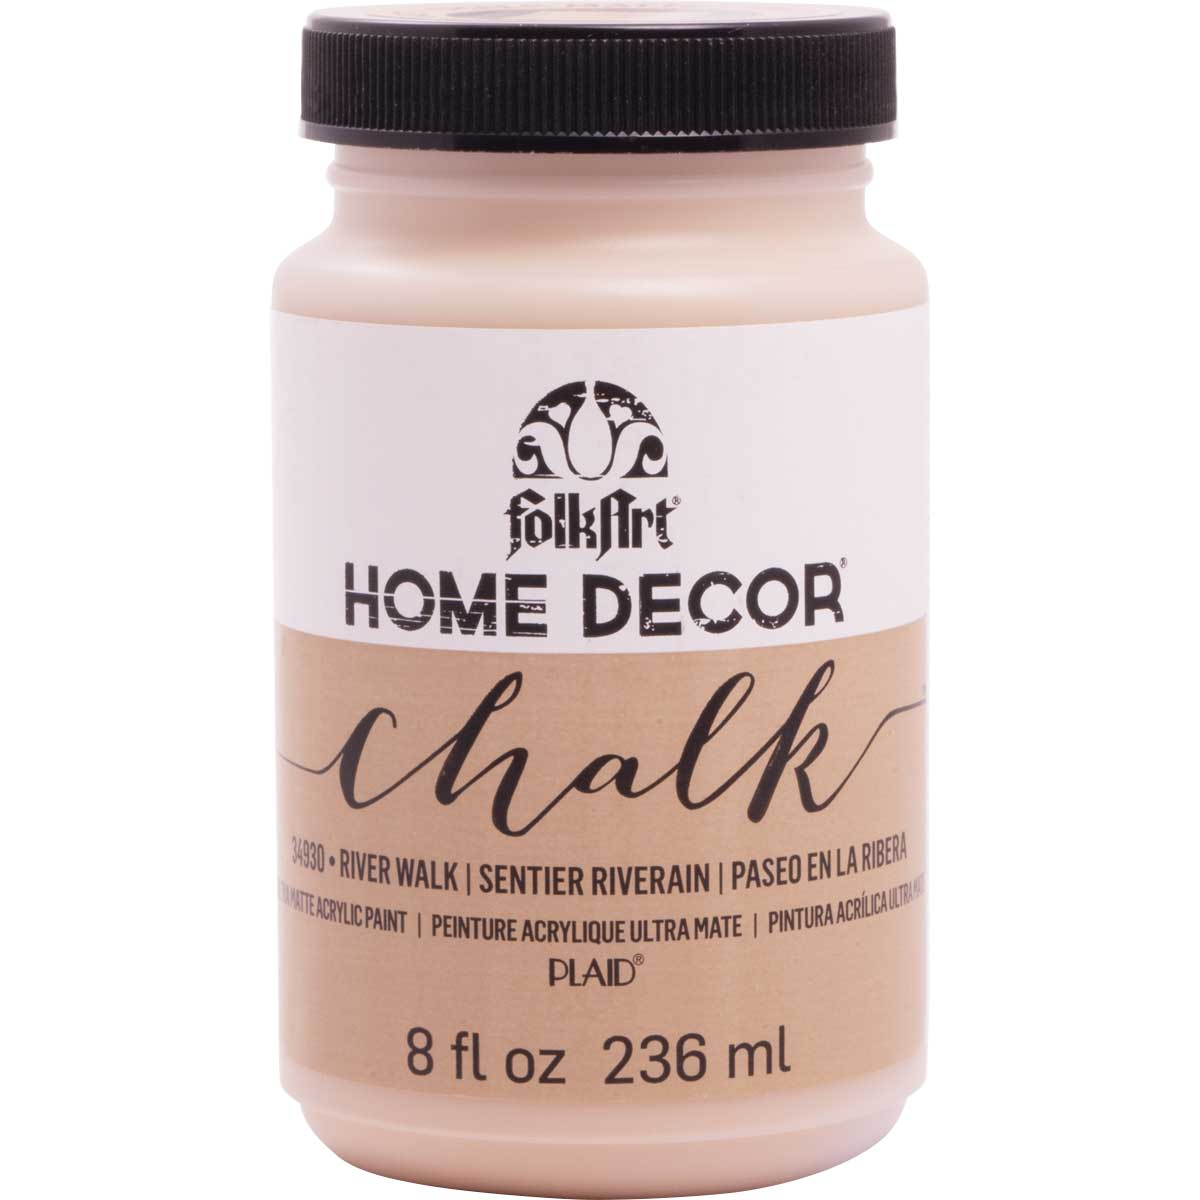 F/A HOME DECOR CHALK - RIVER WALK 8 OZ.